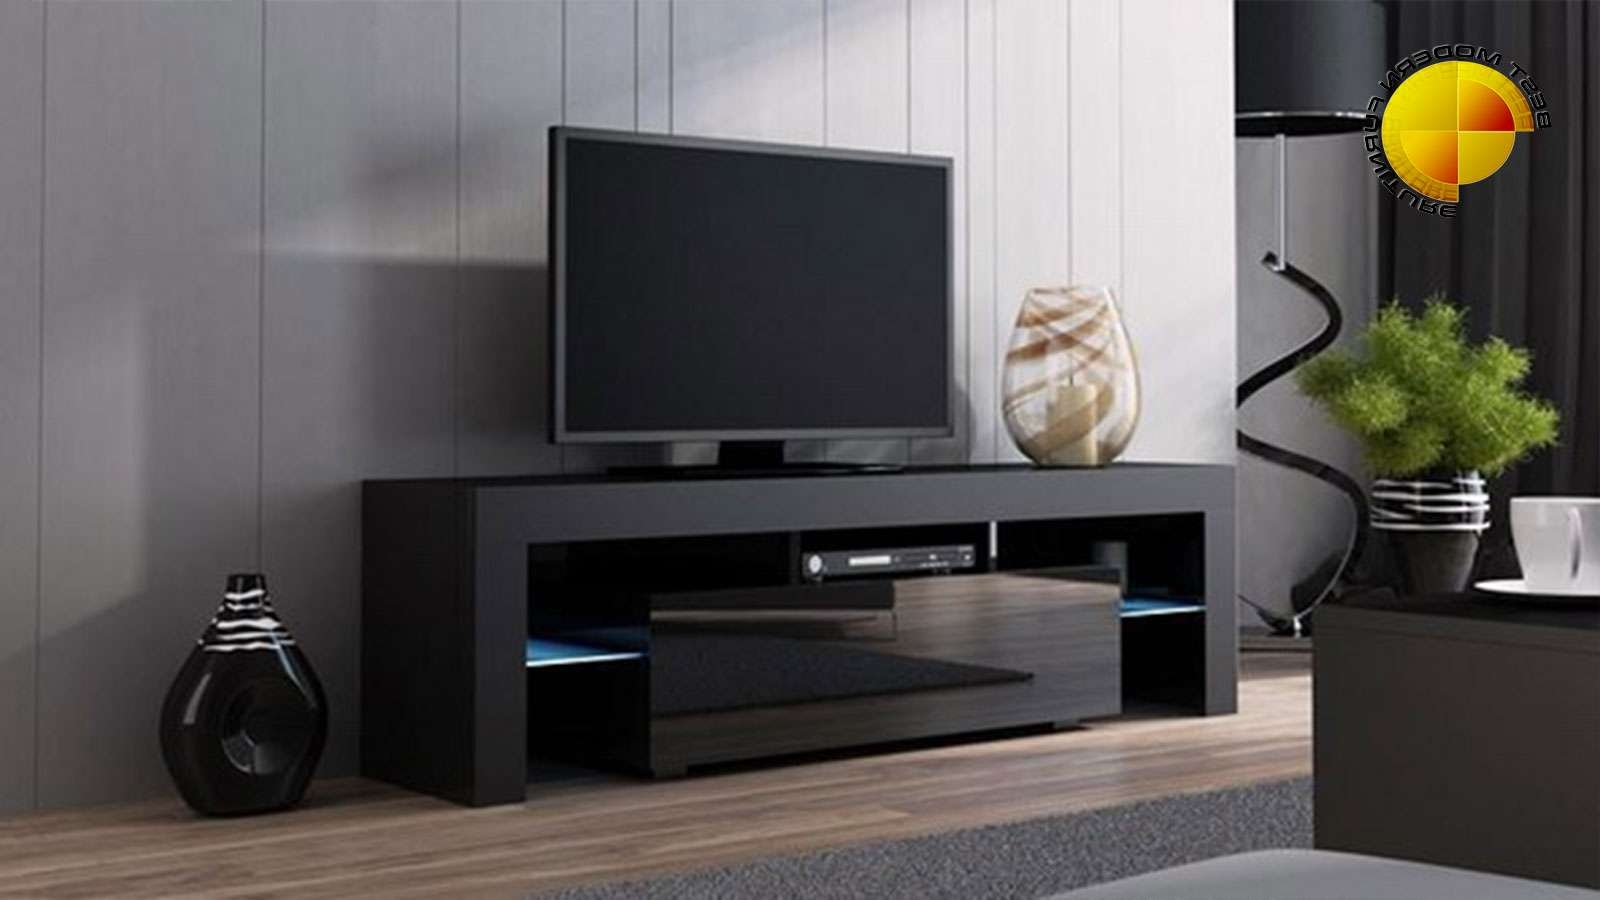 Modern Tv Stand 160Cm High Gloss Cabinet Rgb Led Lights Black Unit Inside Tv Cabinets Gloss White (View 13 of 20)